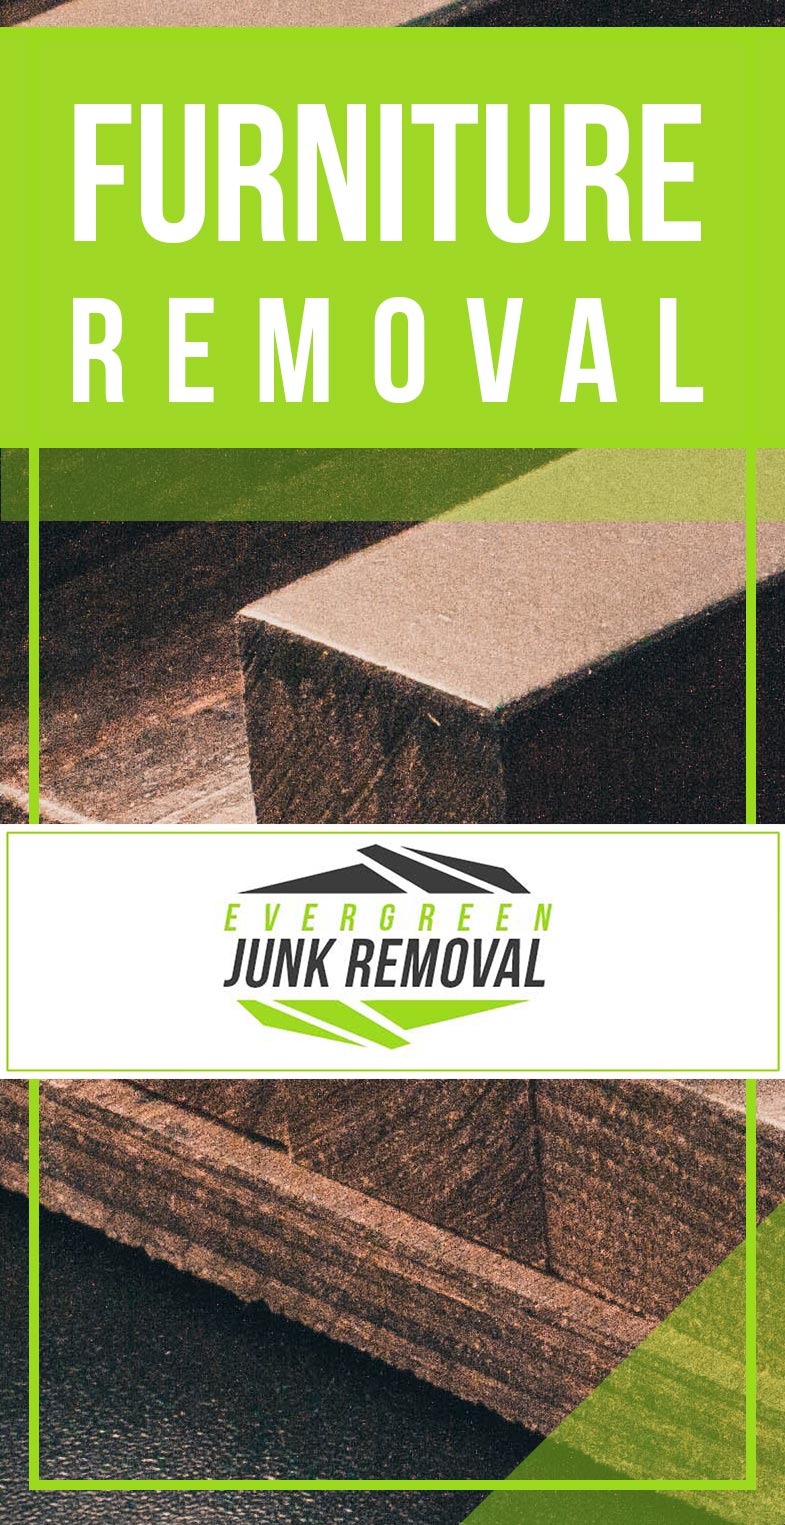 Junk Removal Loxahatchee Groves Furniture Removal